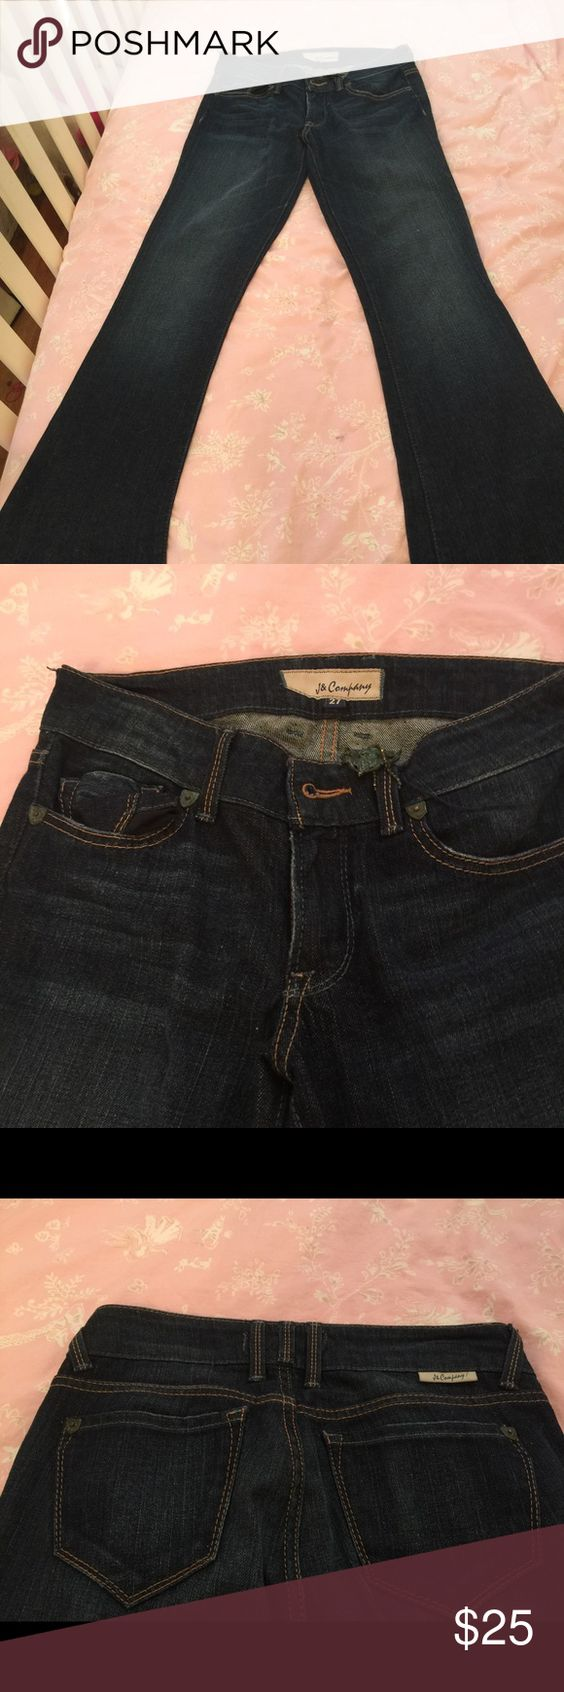 Size 27 New without tags j & company jeans Brand new without tags j and company boot cut jeans j and company Jeans Boot Cut